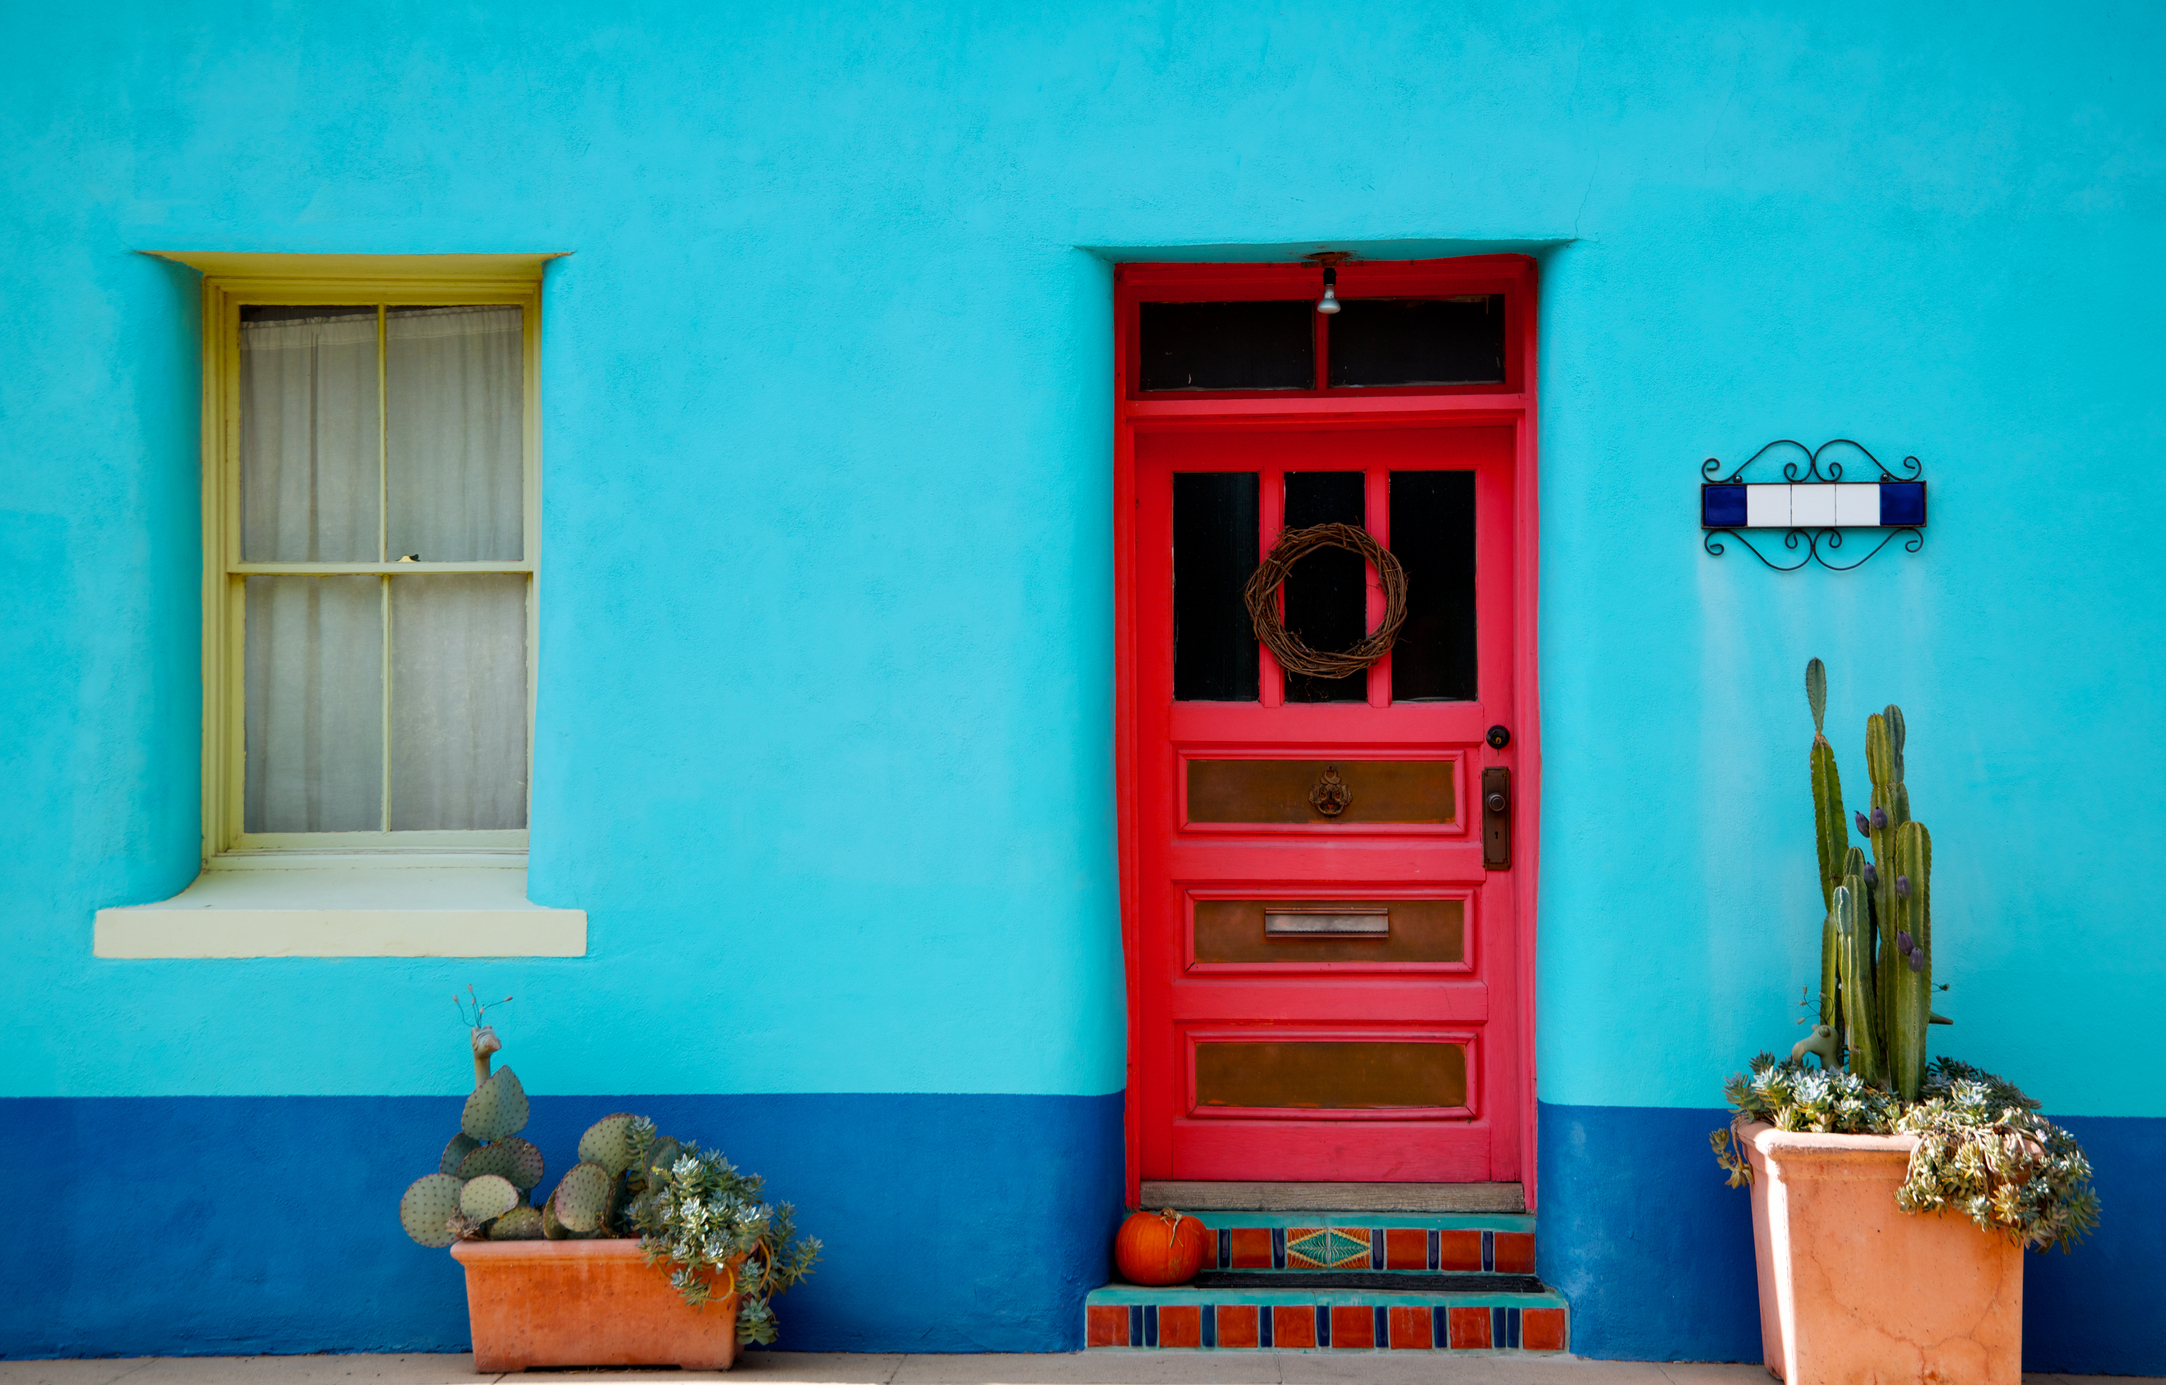 """""""Home in Arizona or Mexico showing turquoise blue stucco wall, red door and orange pumpkin. Door flanked by terracotta pots with local cacti."""""""